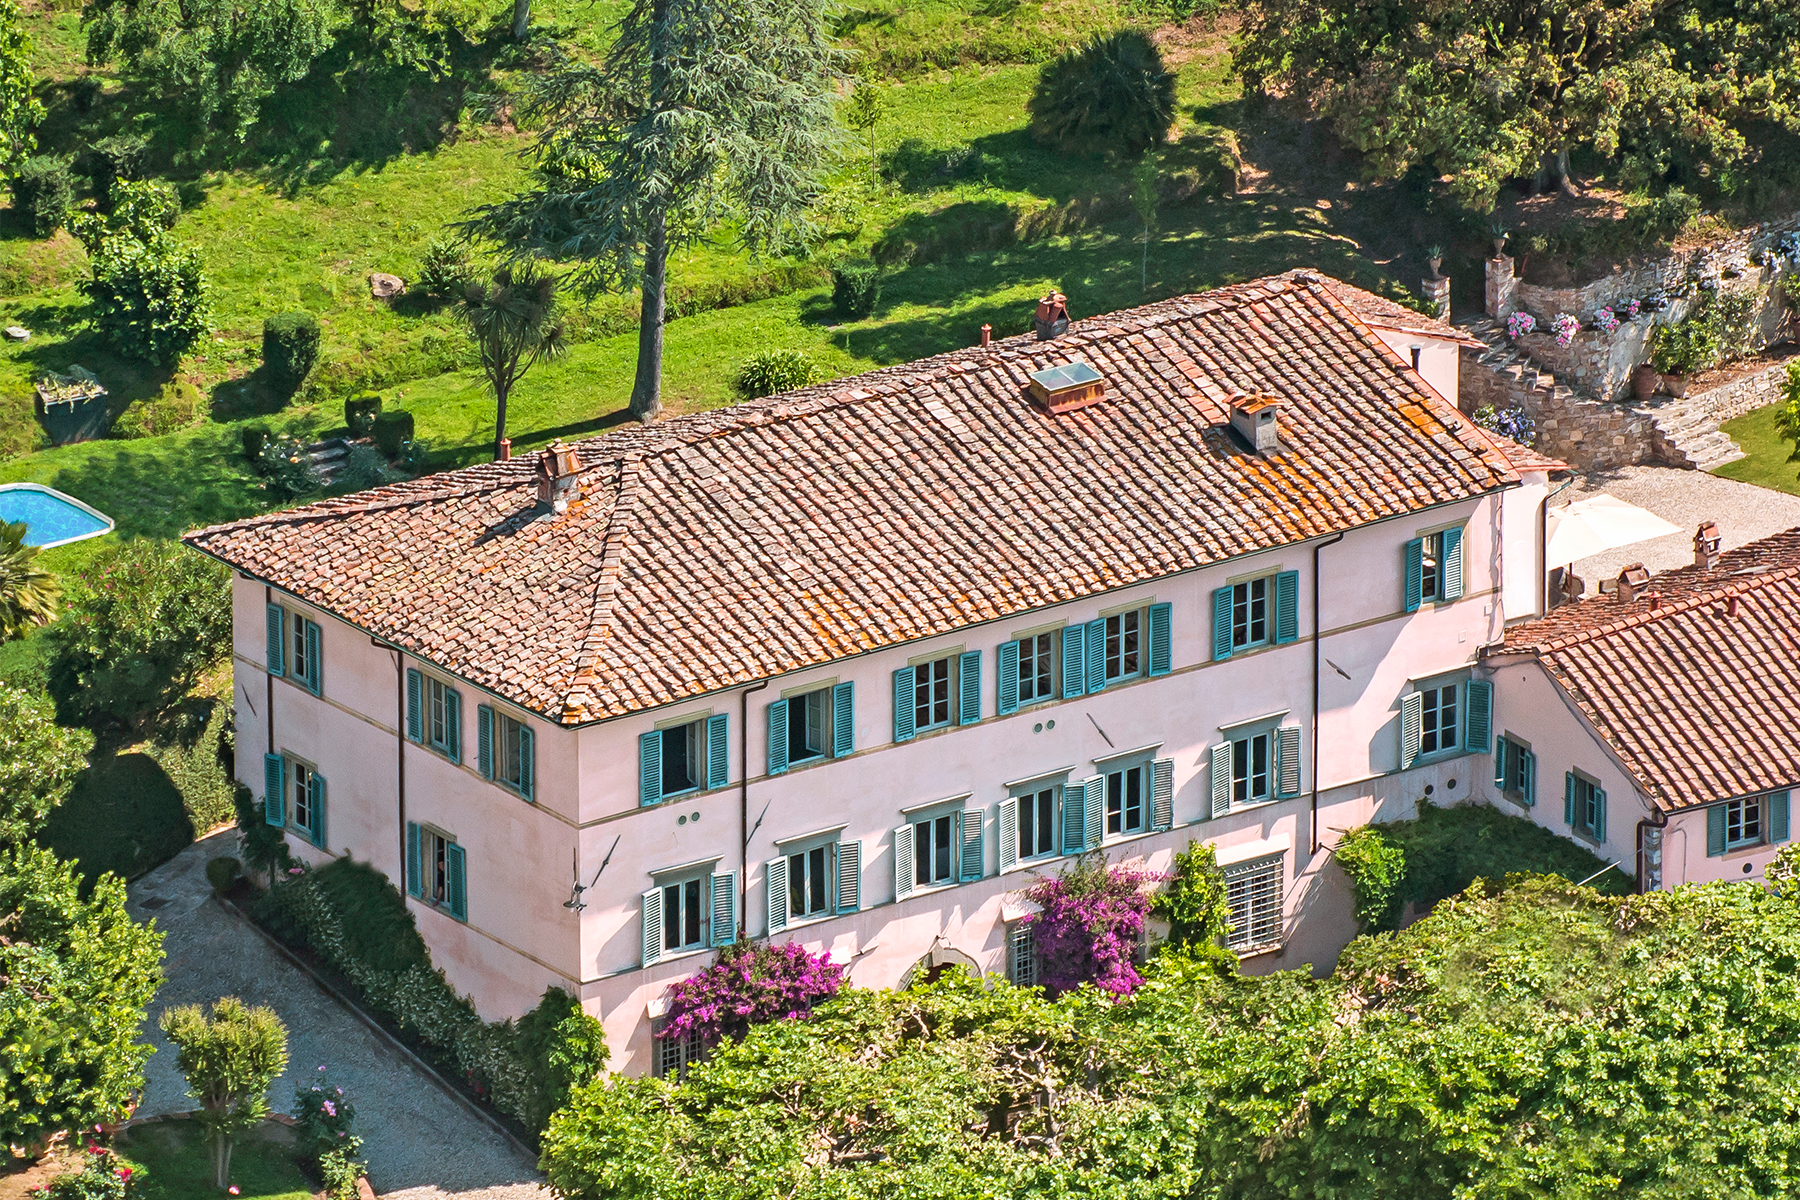 Single Family Home for Sale at Traditional two story villa overlooking the valley Lucca, Italy